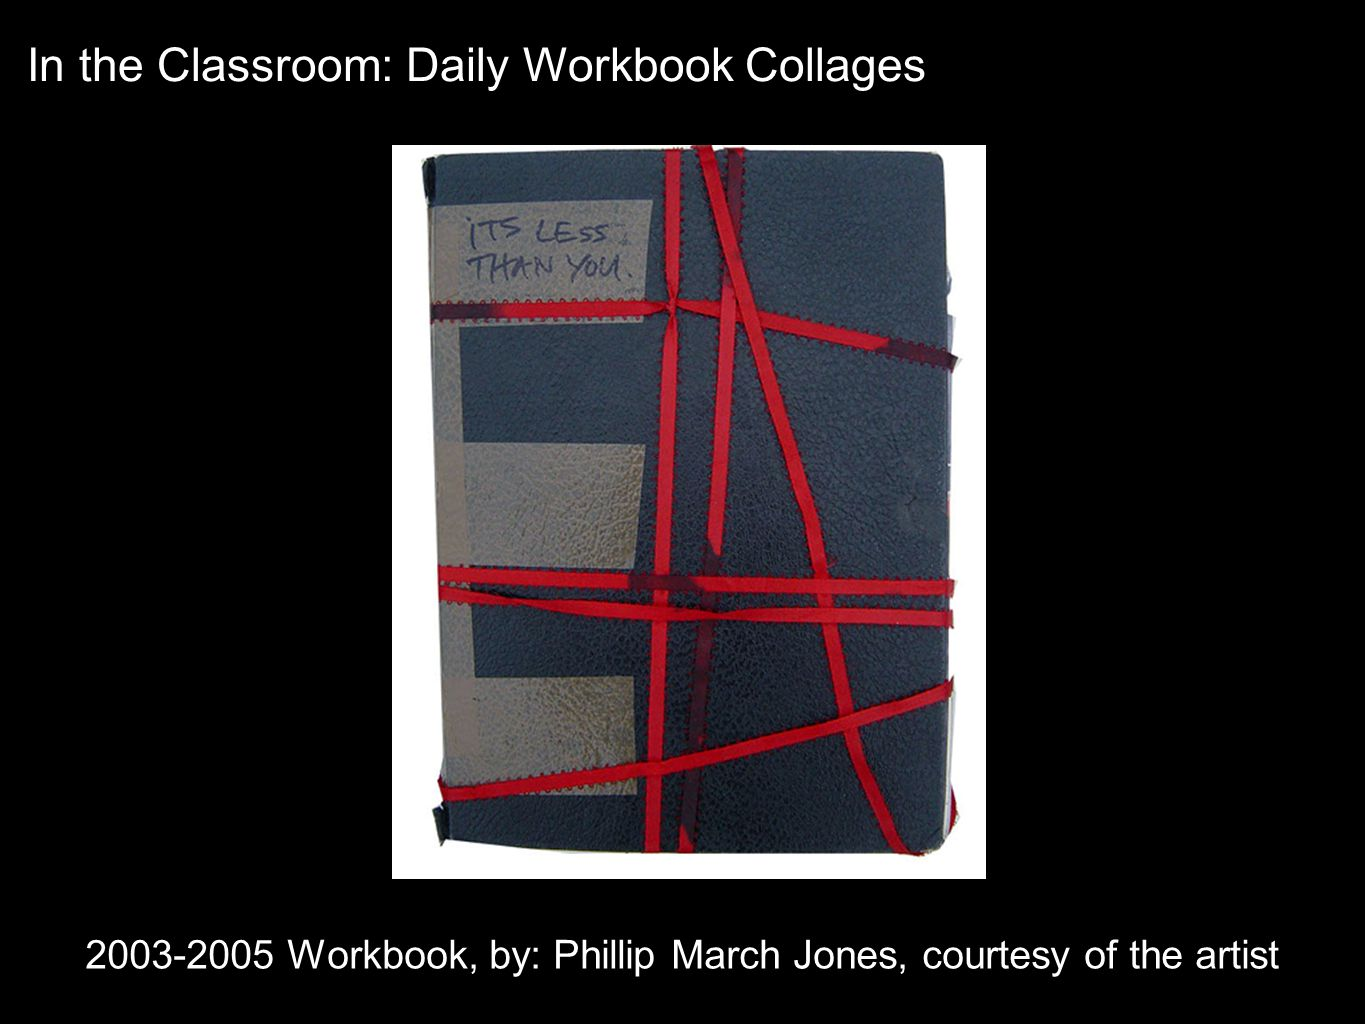 2003-2005 Workbook, by: Phillip March Jones, courtesy of the artist In the Classroom: Daily Workbook Collages